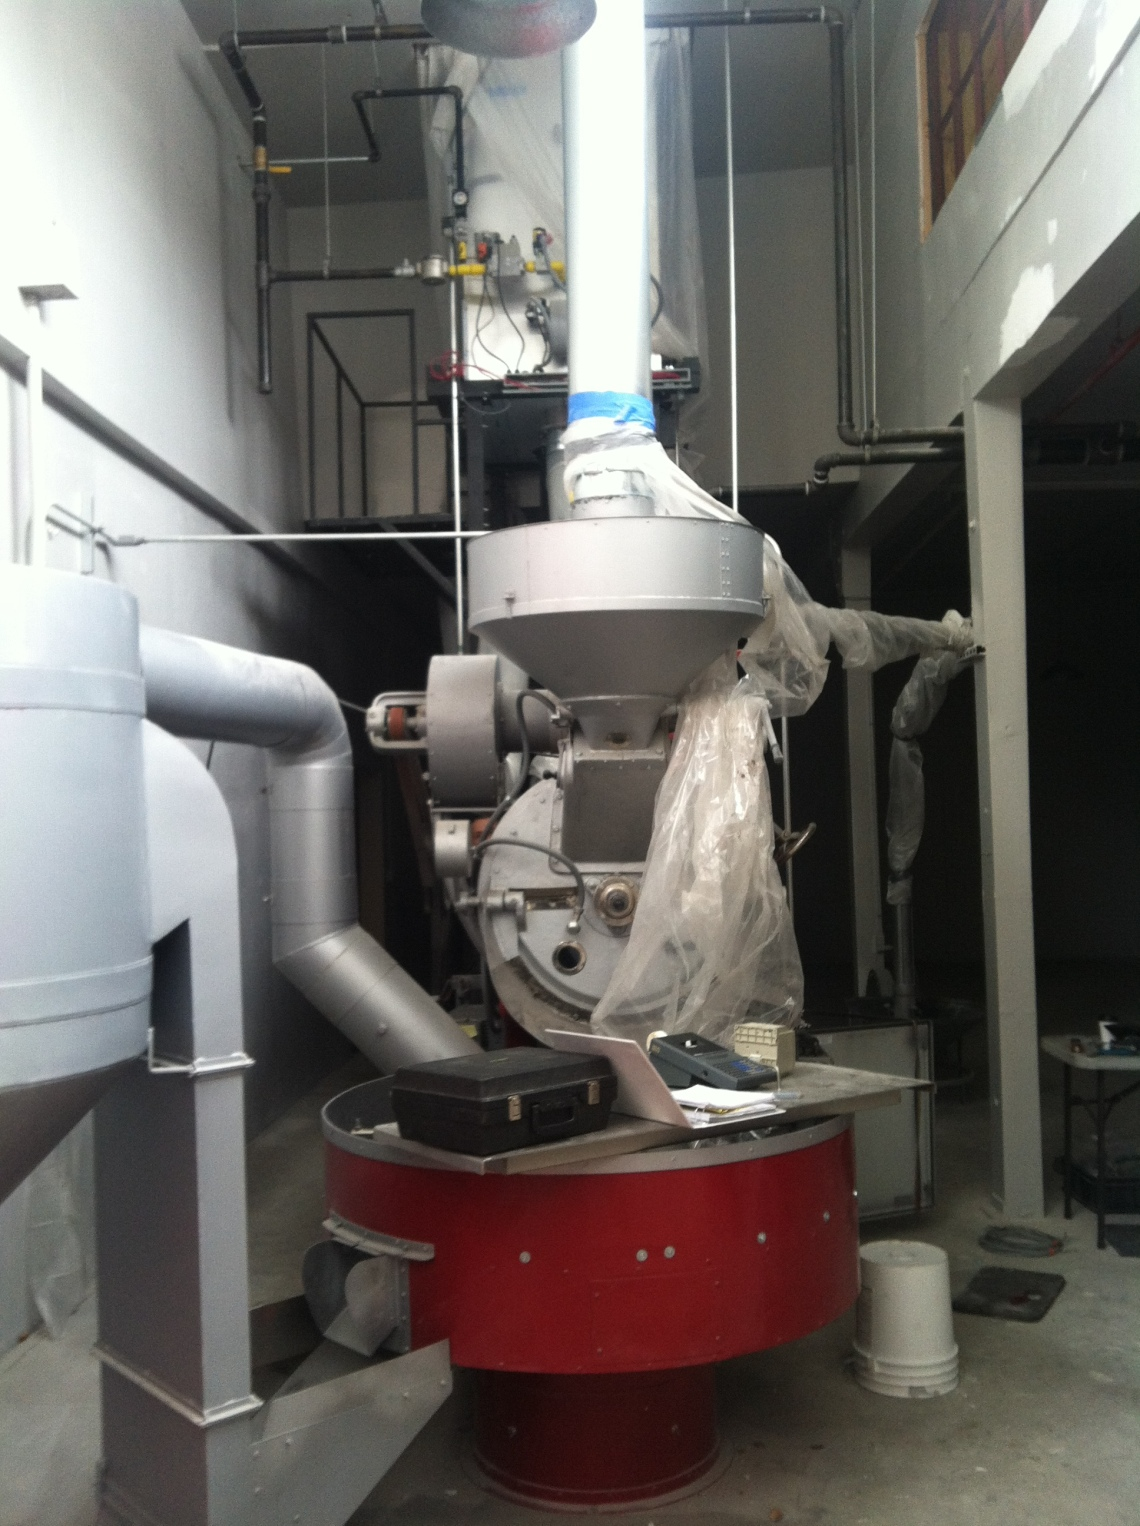 45 kg Probat coffee roaster (aka Beany the Transformer)